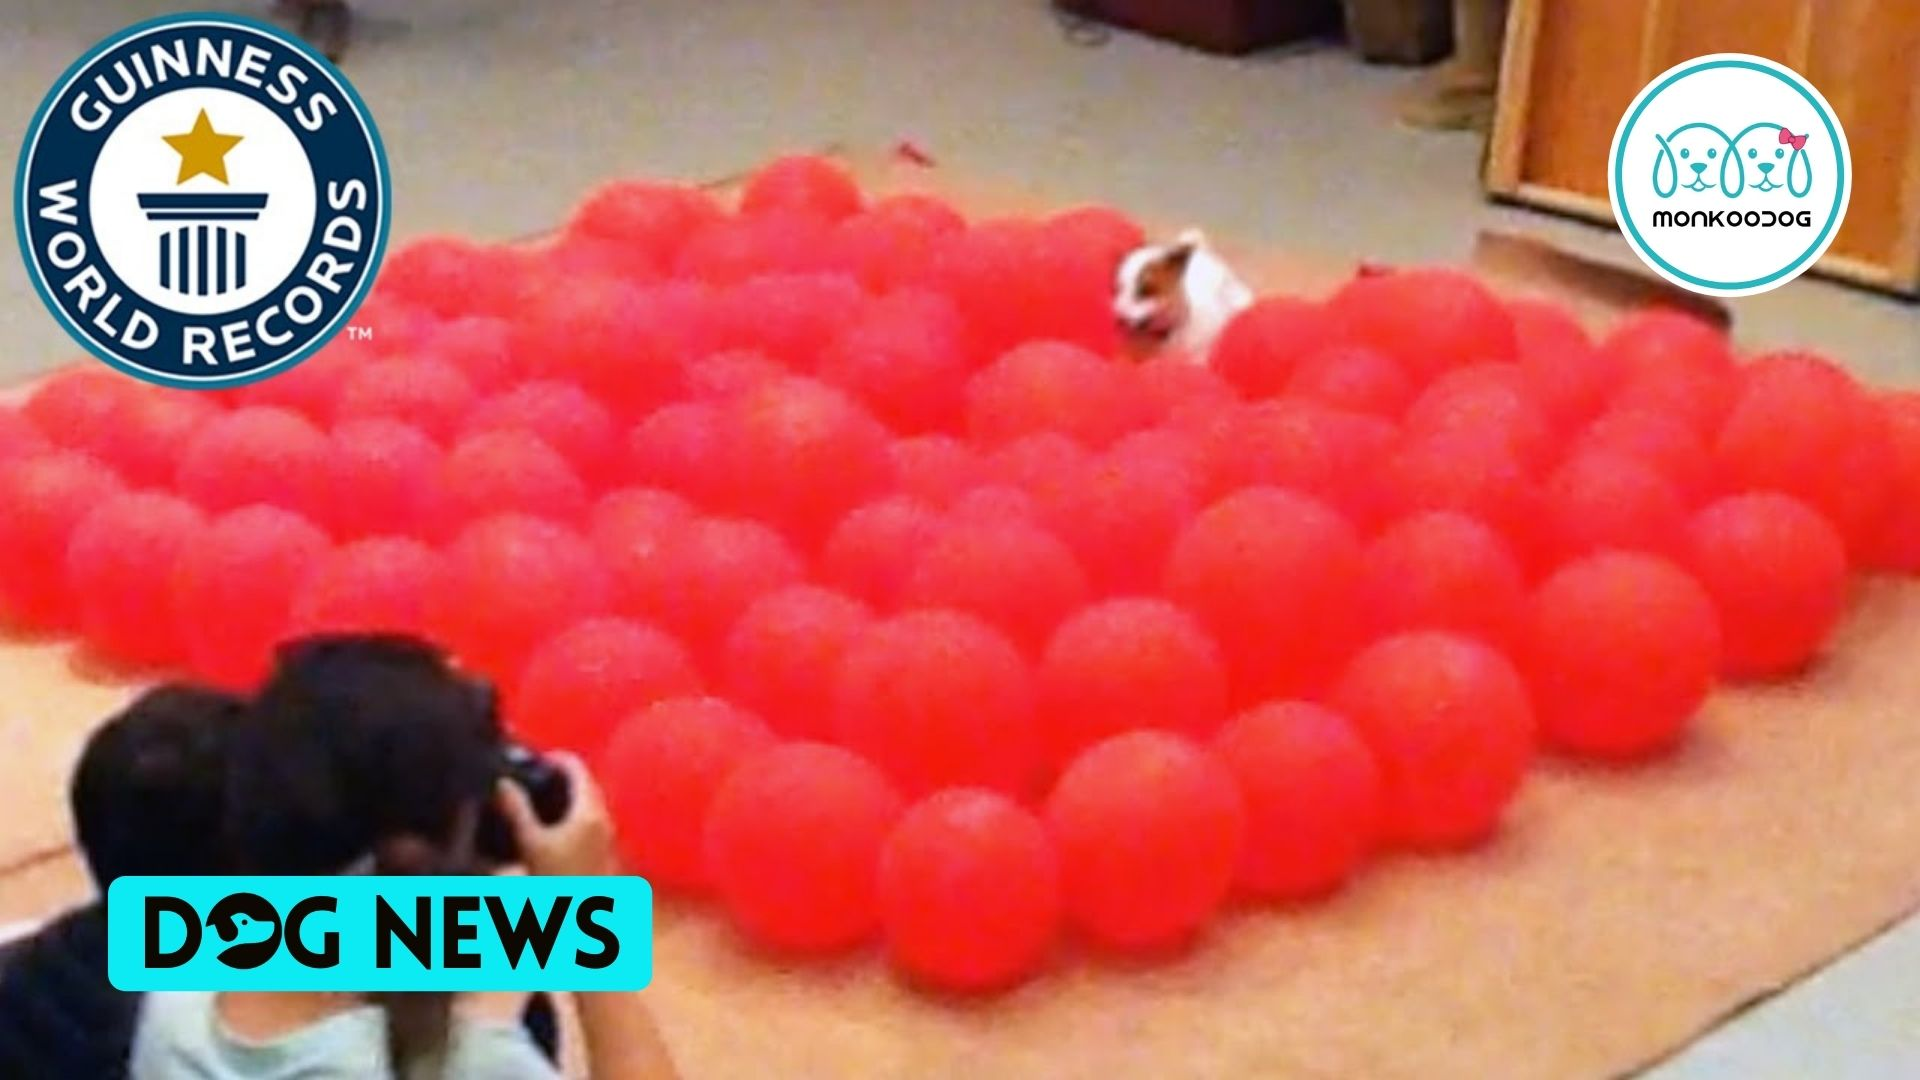 Watch An adorable little dog popping balloons to bag A Guinness World Record